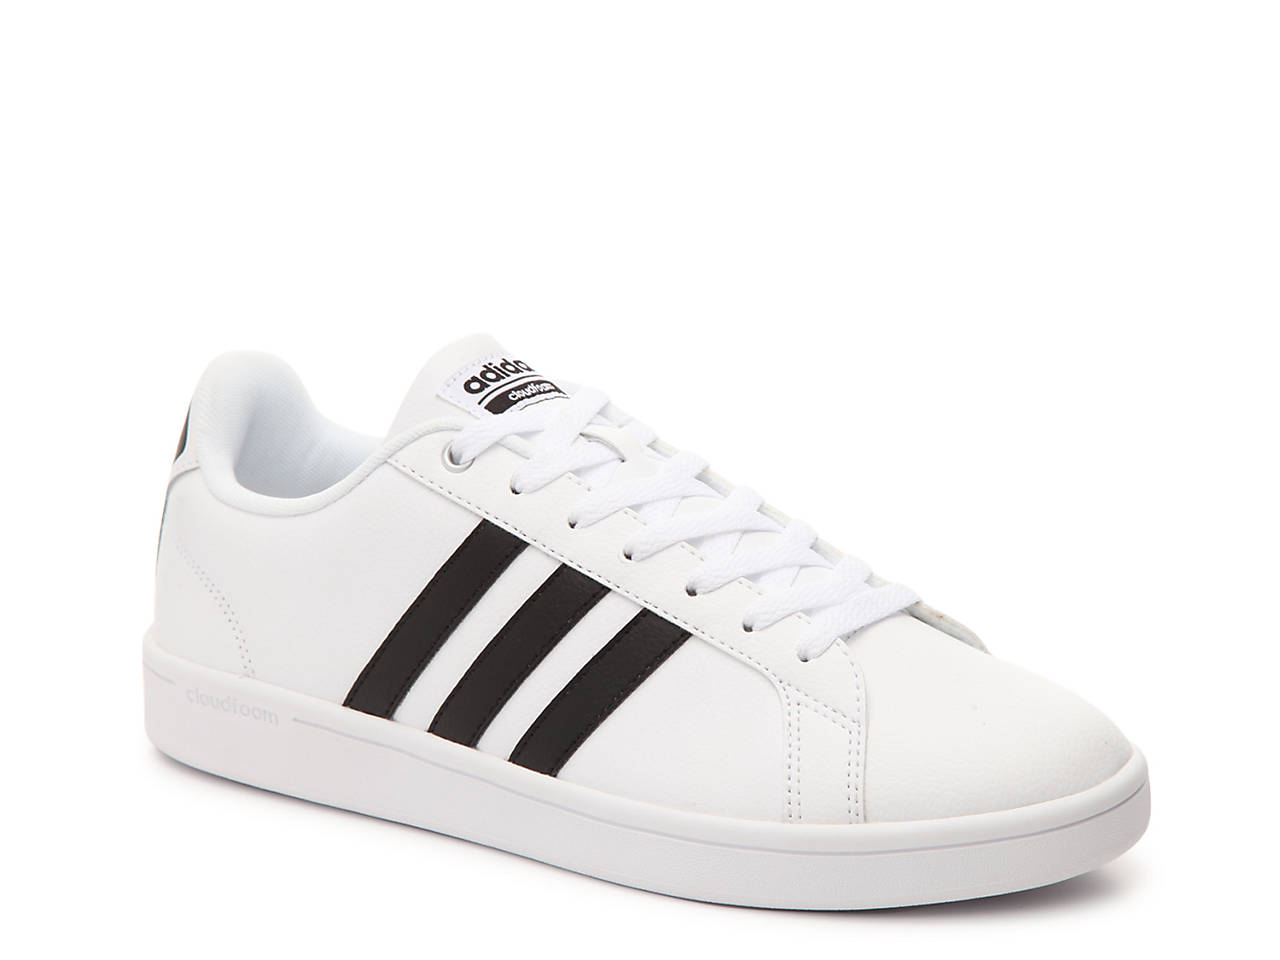 adidas neo cloudfoam advantage adapt men's sneakers